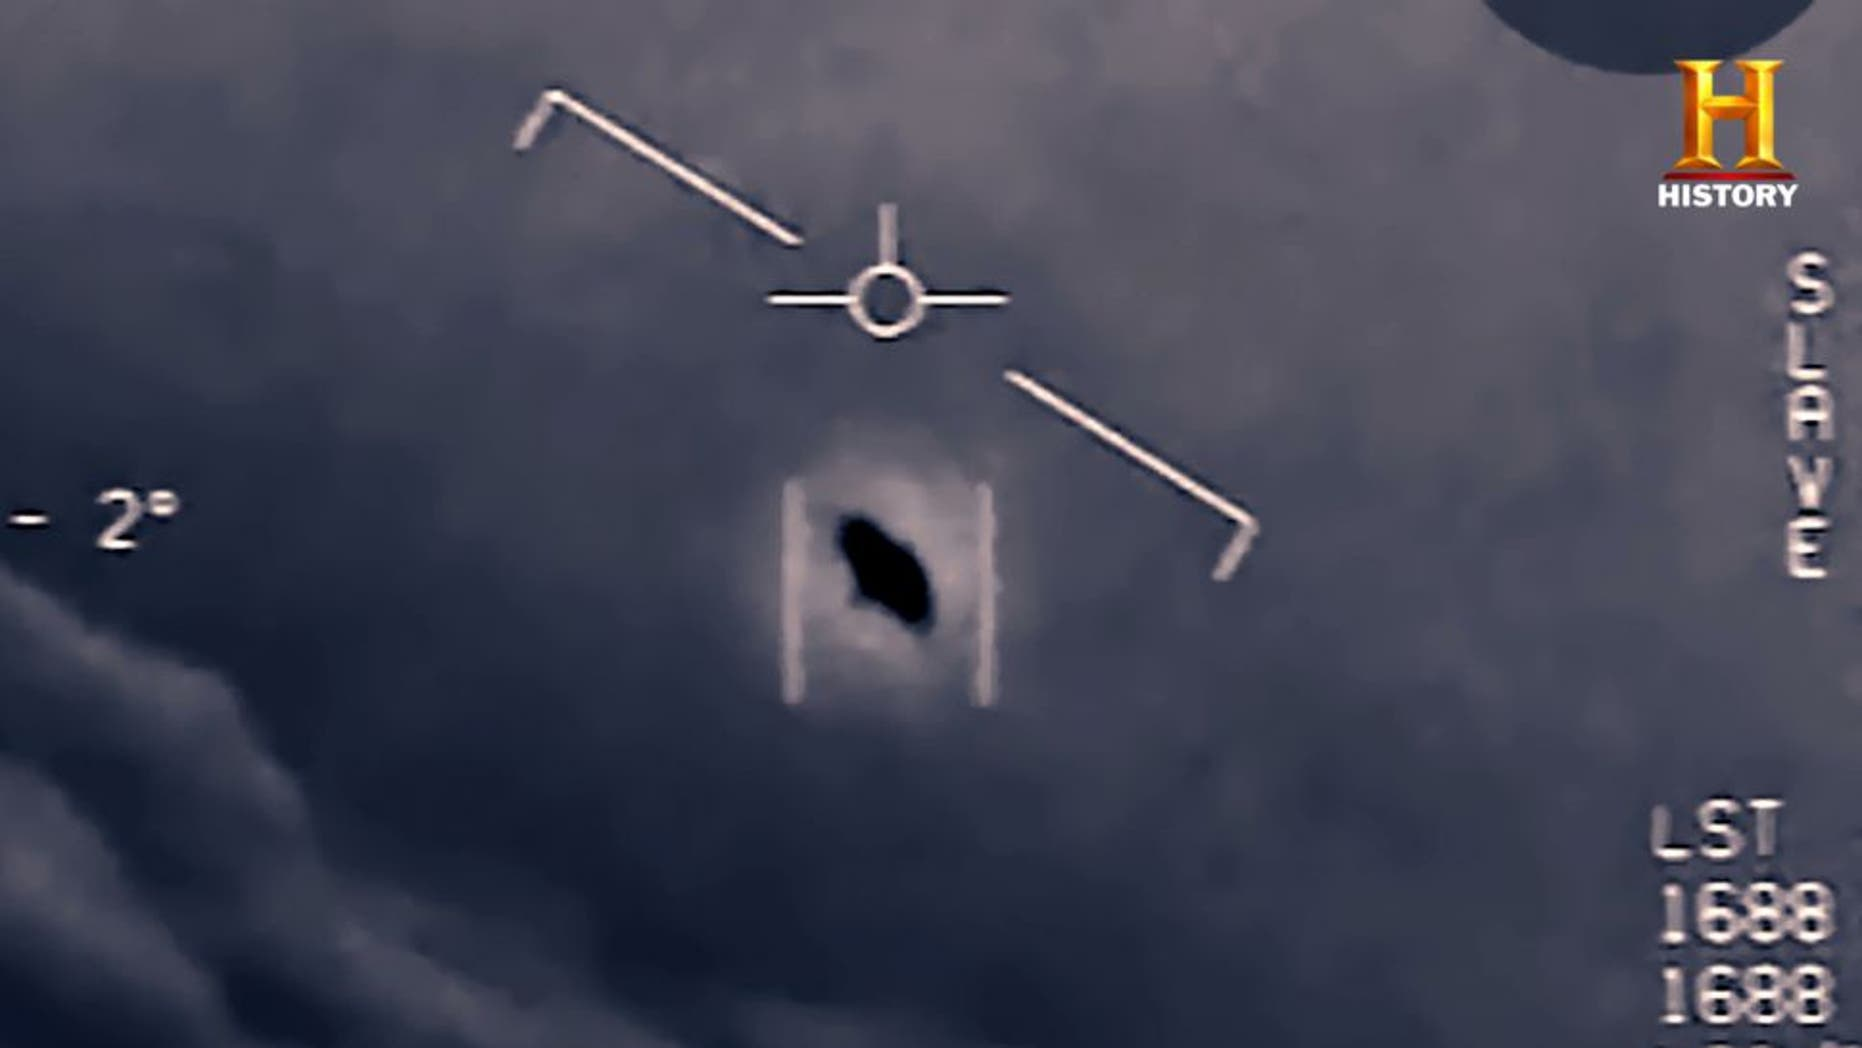 Westlake Legal Group 656961ac-DZKRG3pfckUg2MmWnUJueU UFOs remain elusive despite decades of study Space.com Leonard David fox-news/science/air-and-space/ufos fnc/science fnc article 15311e90-ec30-5423-a179-52f2c6aaade9